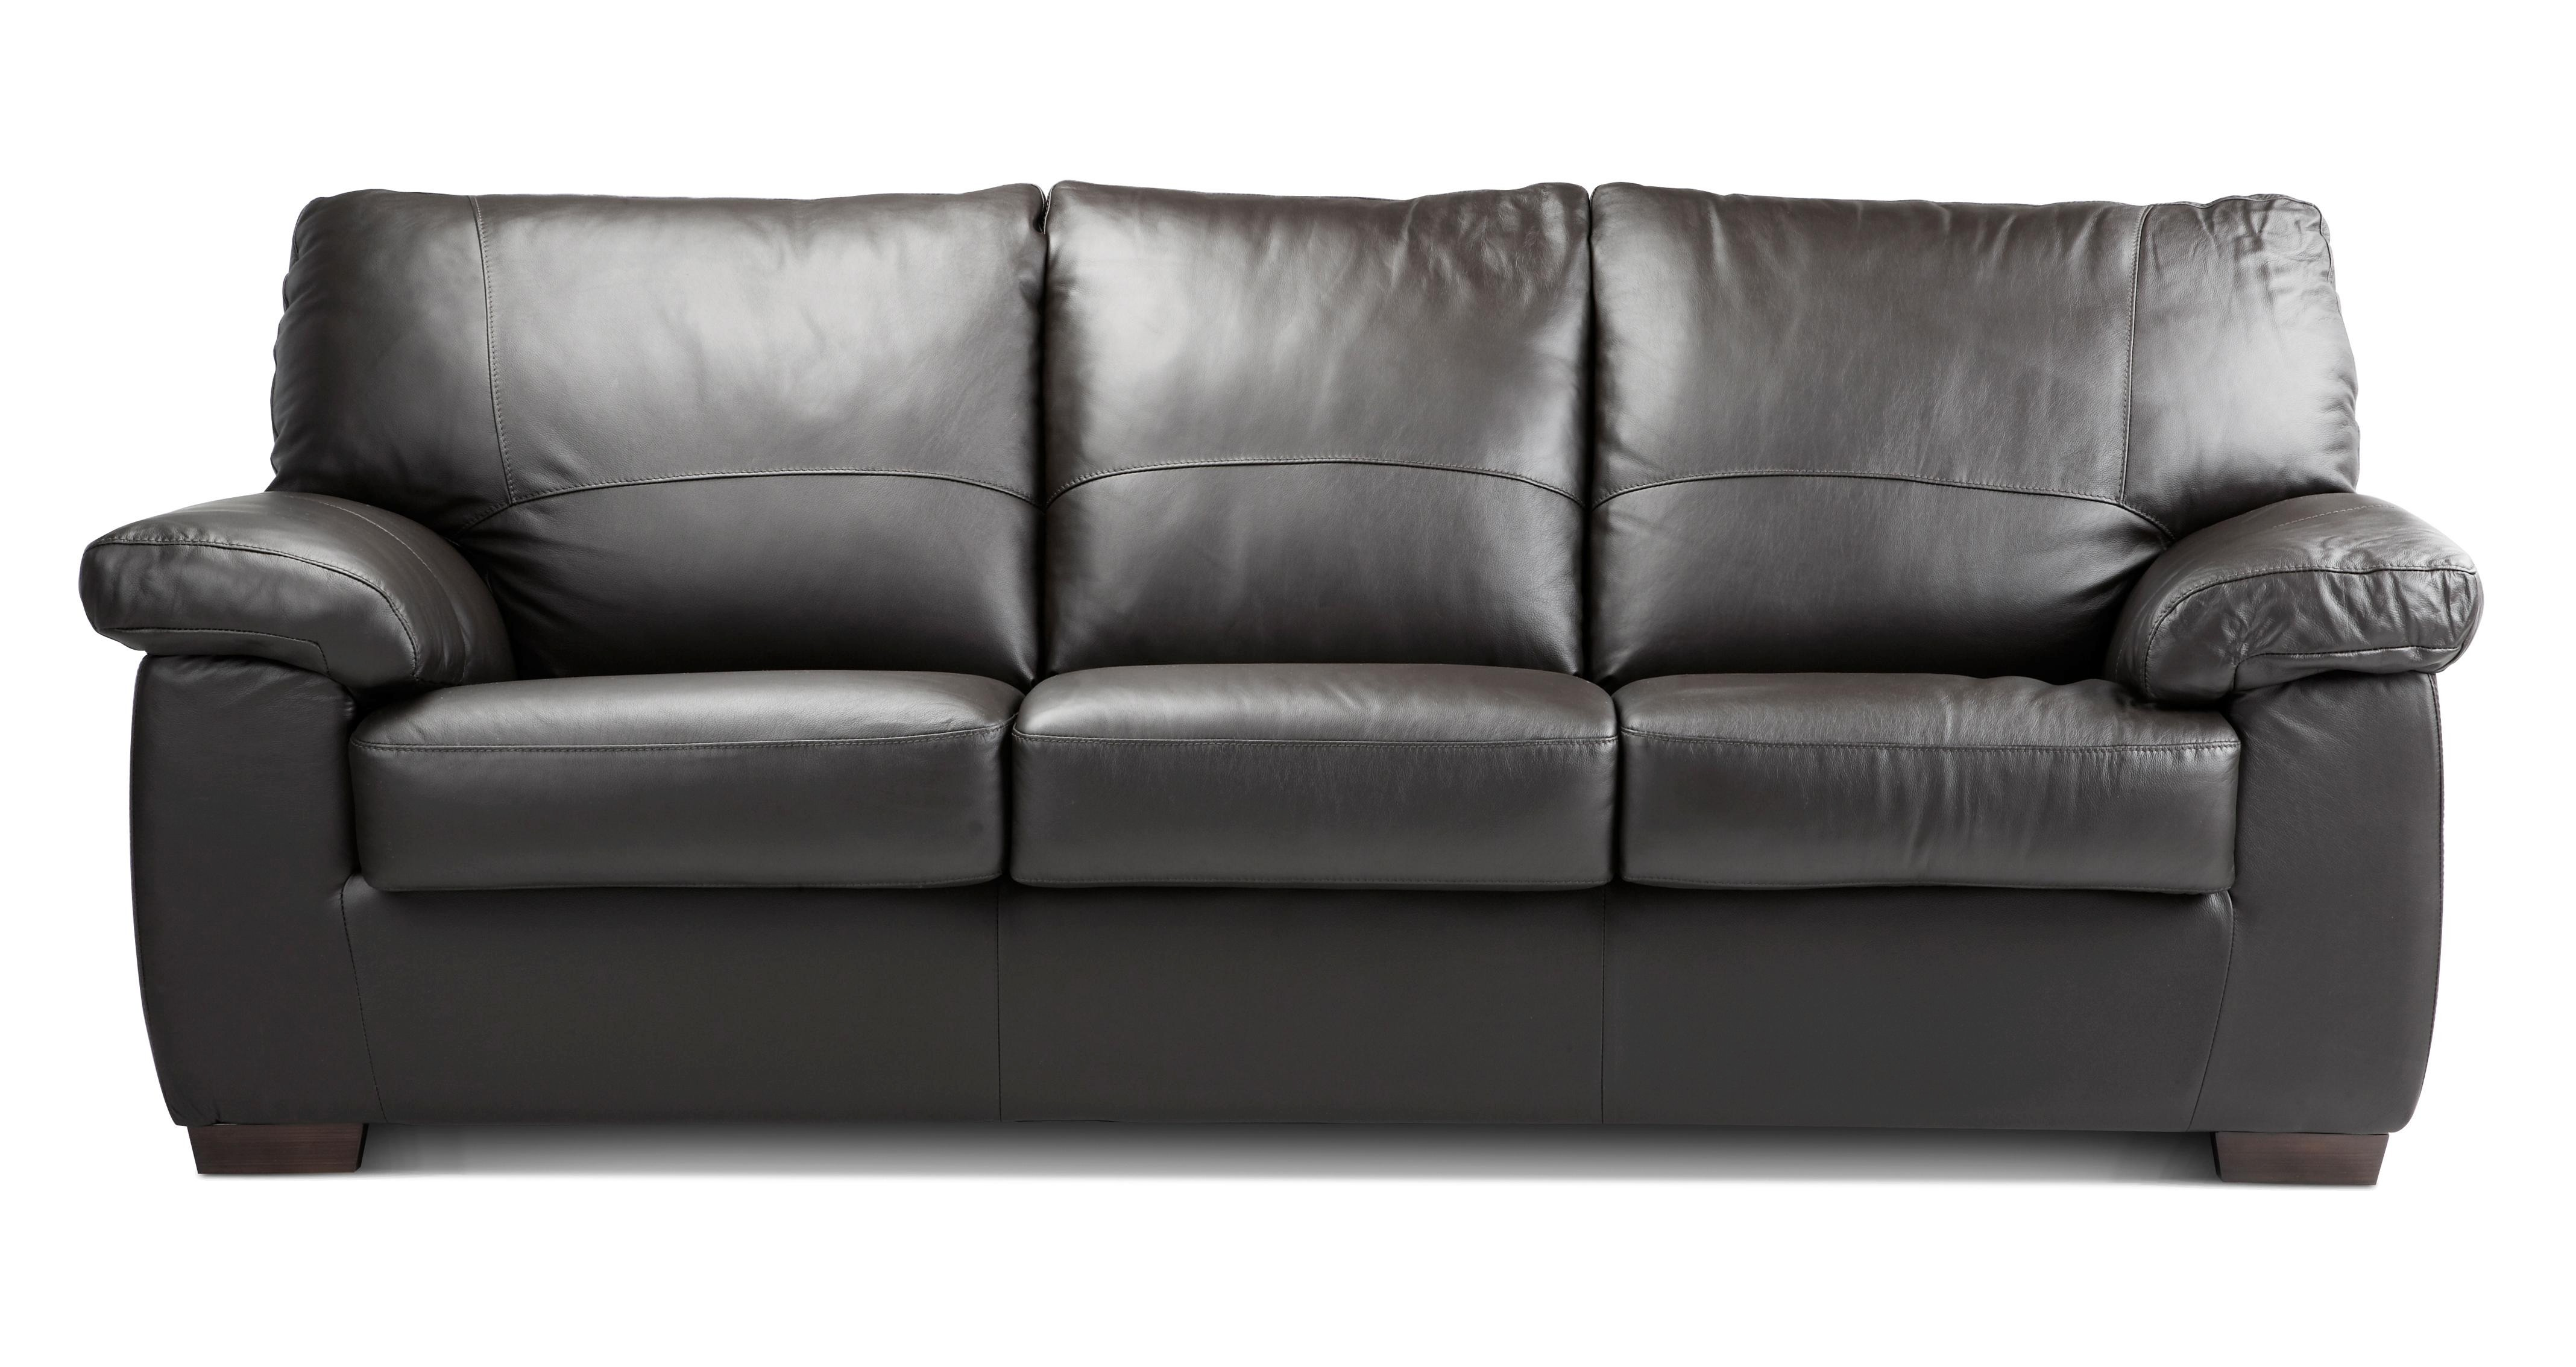 Sofa Gallery Image And Wallpaper ~ Where Can I Buy A Cheap Sofa Bed